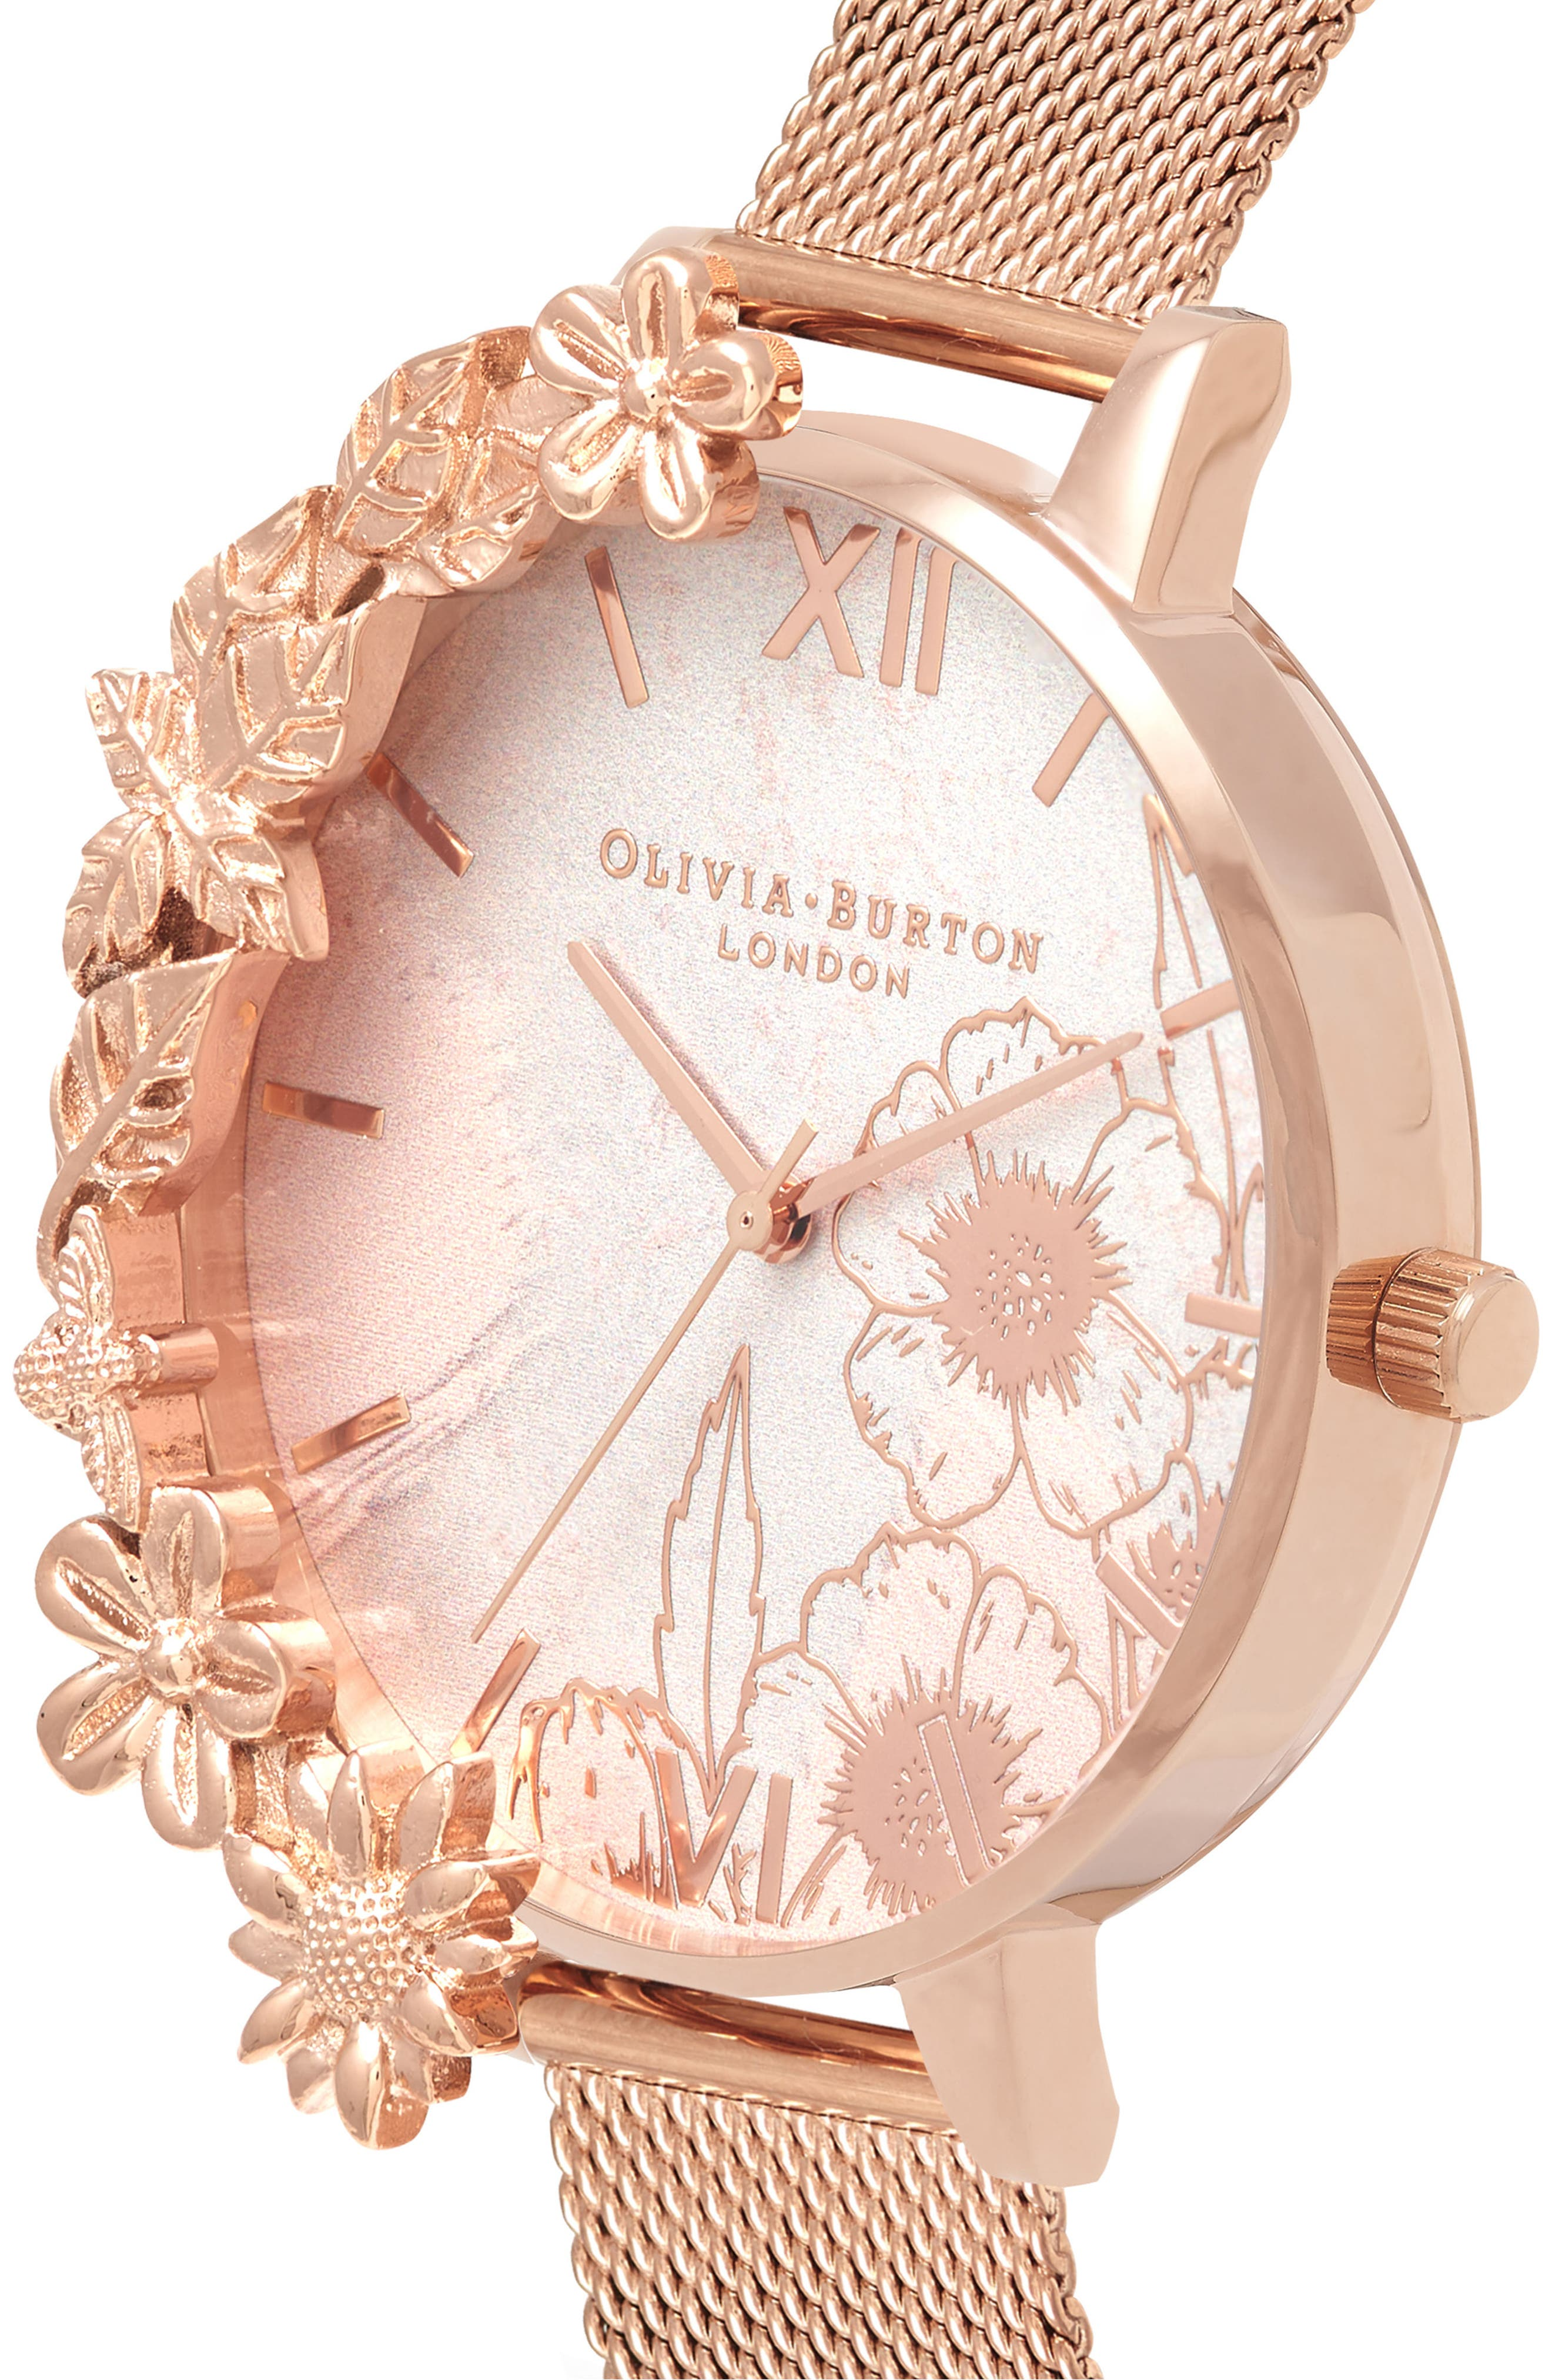 Case Cuff Mesh Strap Watch, 38mm,                             Alternate thumbnail 3, color,                             ROSE GOLD/ FLORAL/ ROSE GOLD